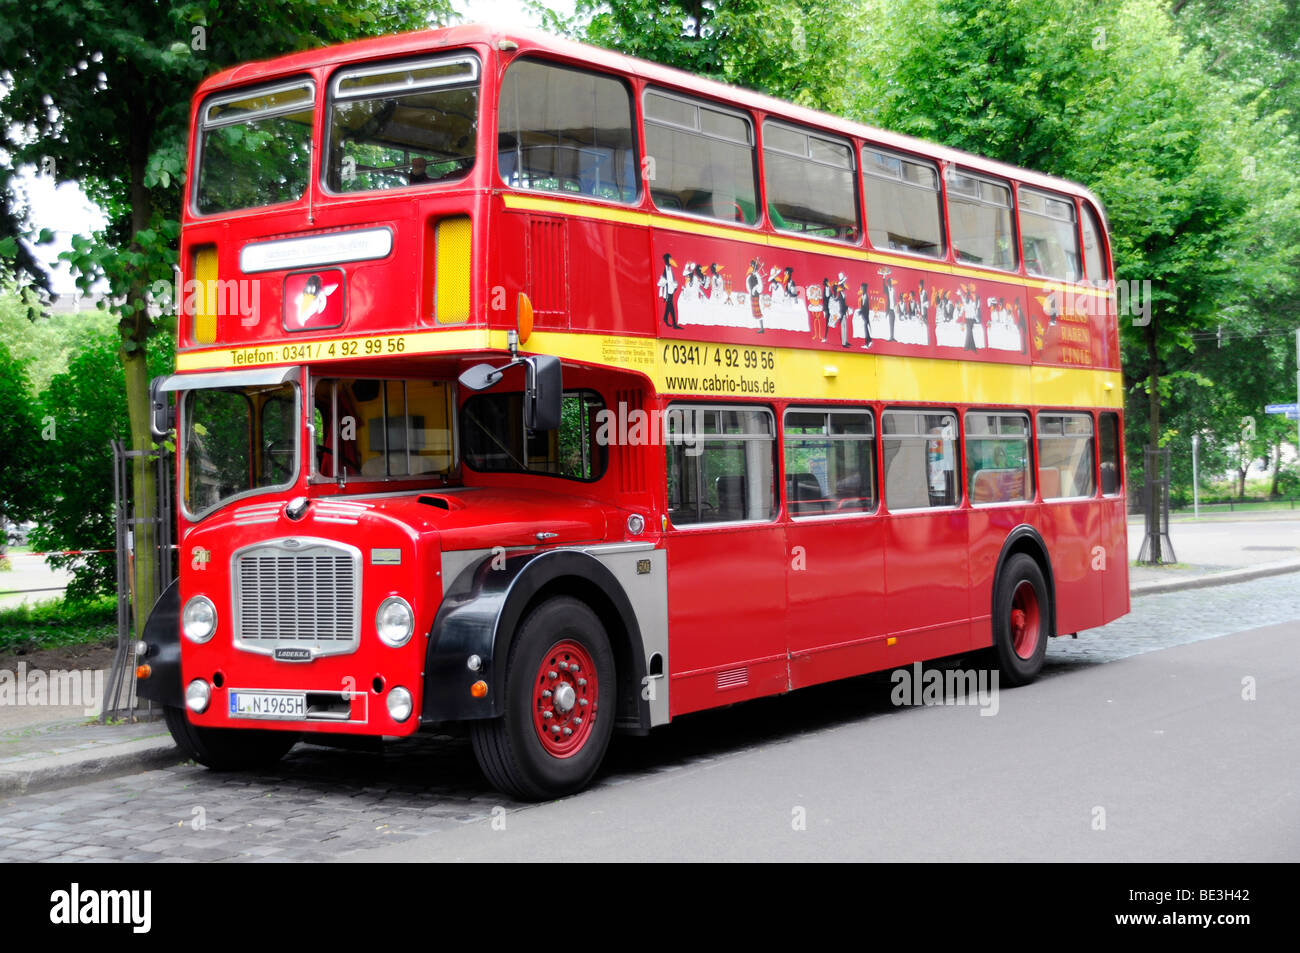 english bus routemaster sightseeing tours leipzig saxony stockfoto lizenzfreies bild. Black Bedroom Furniture Sets. Home Design Ideas